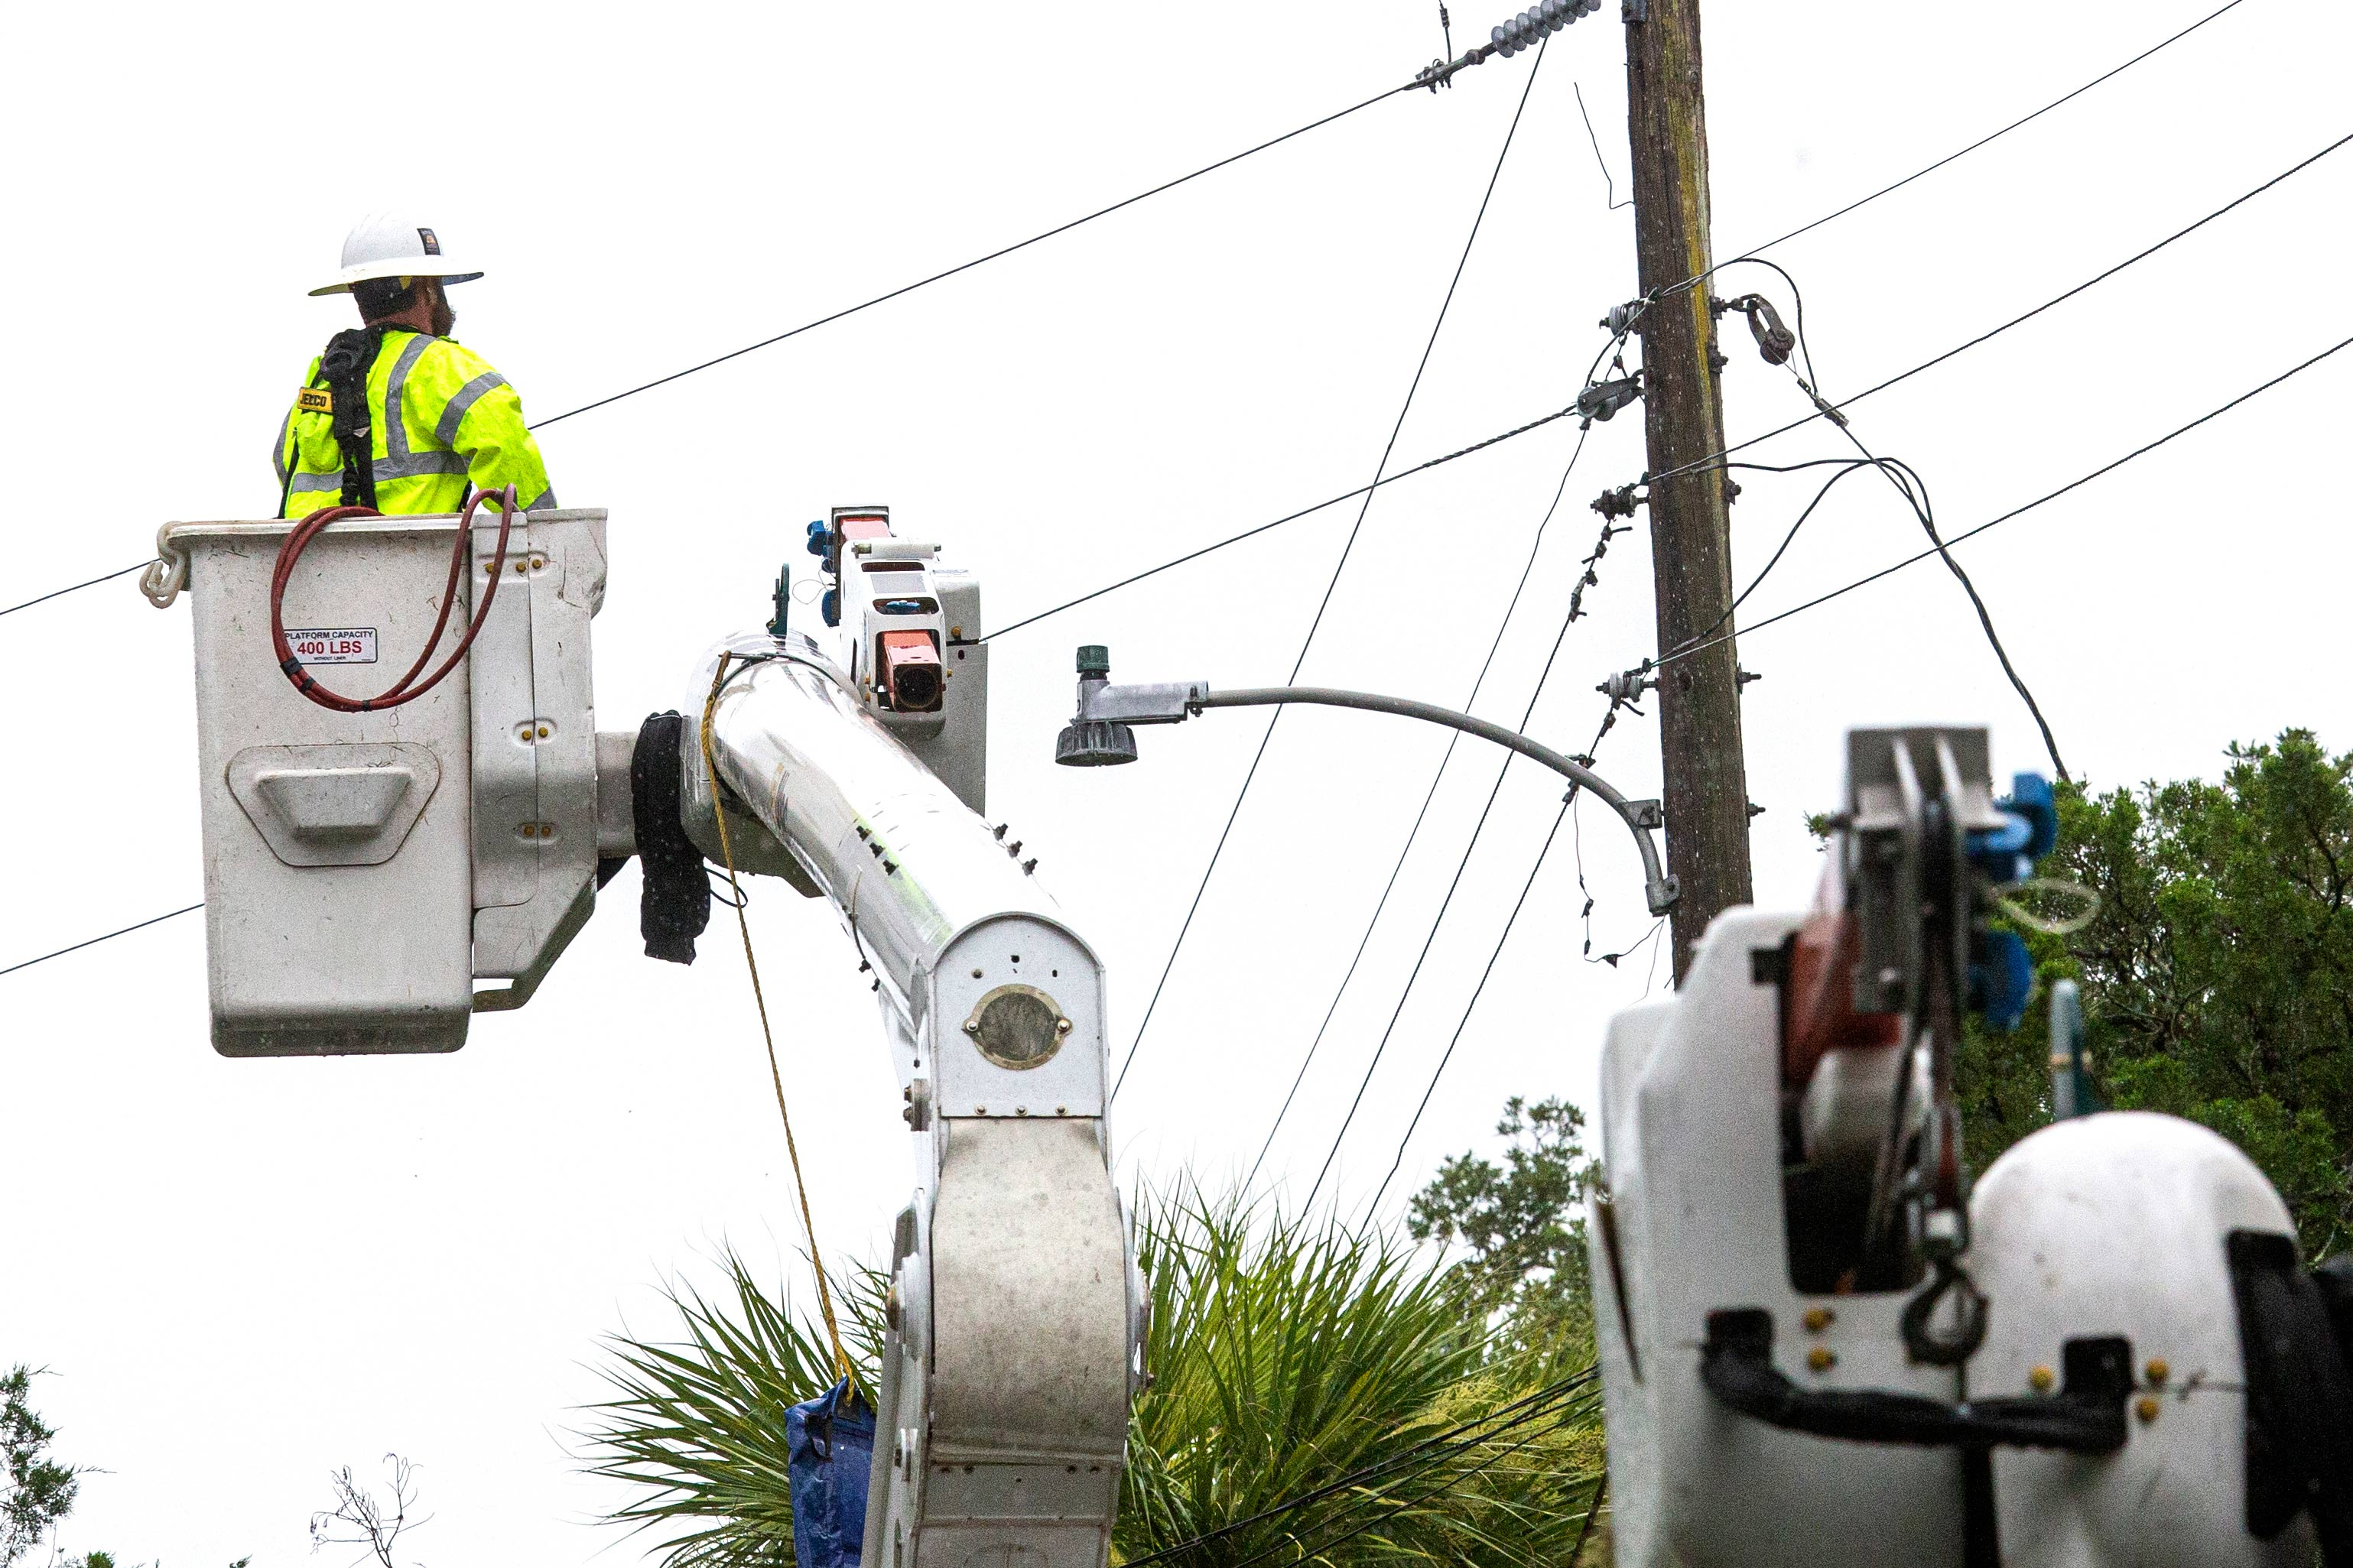 Power crews work to restore power after Tropical Storm Elsa made landfall nearby on July 7 in Cedar Key, Florida.